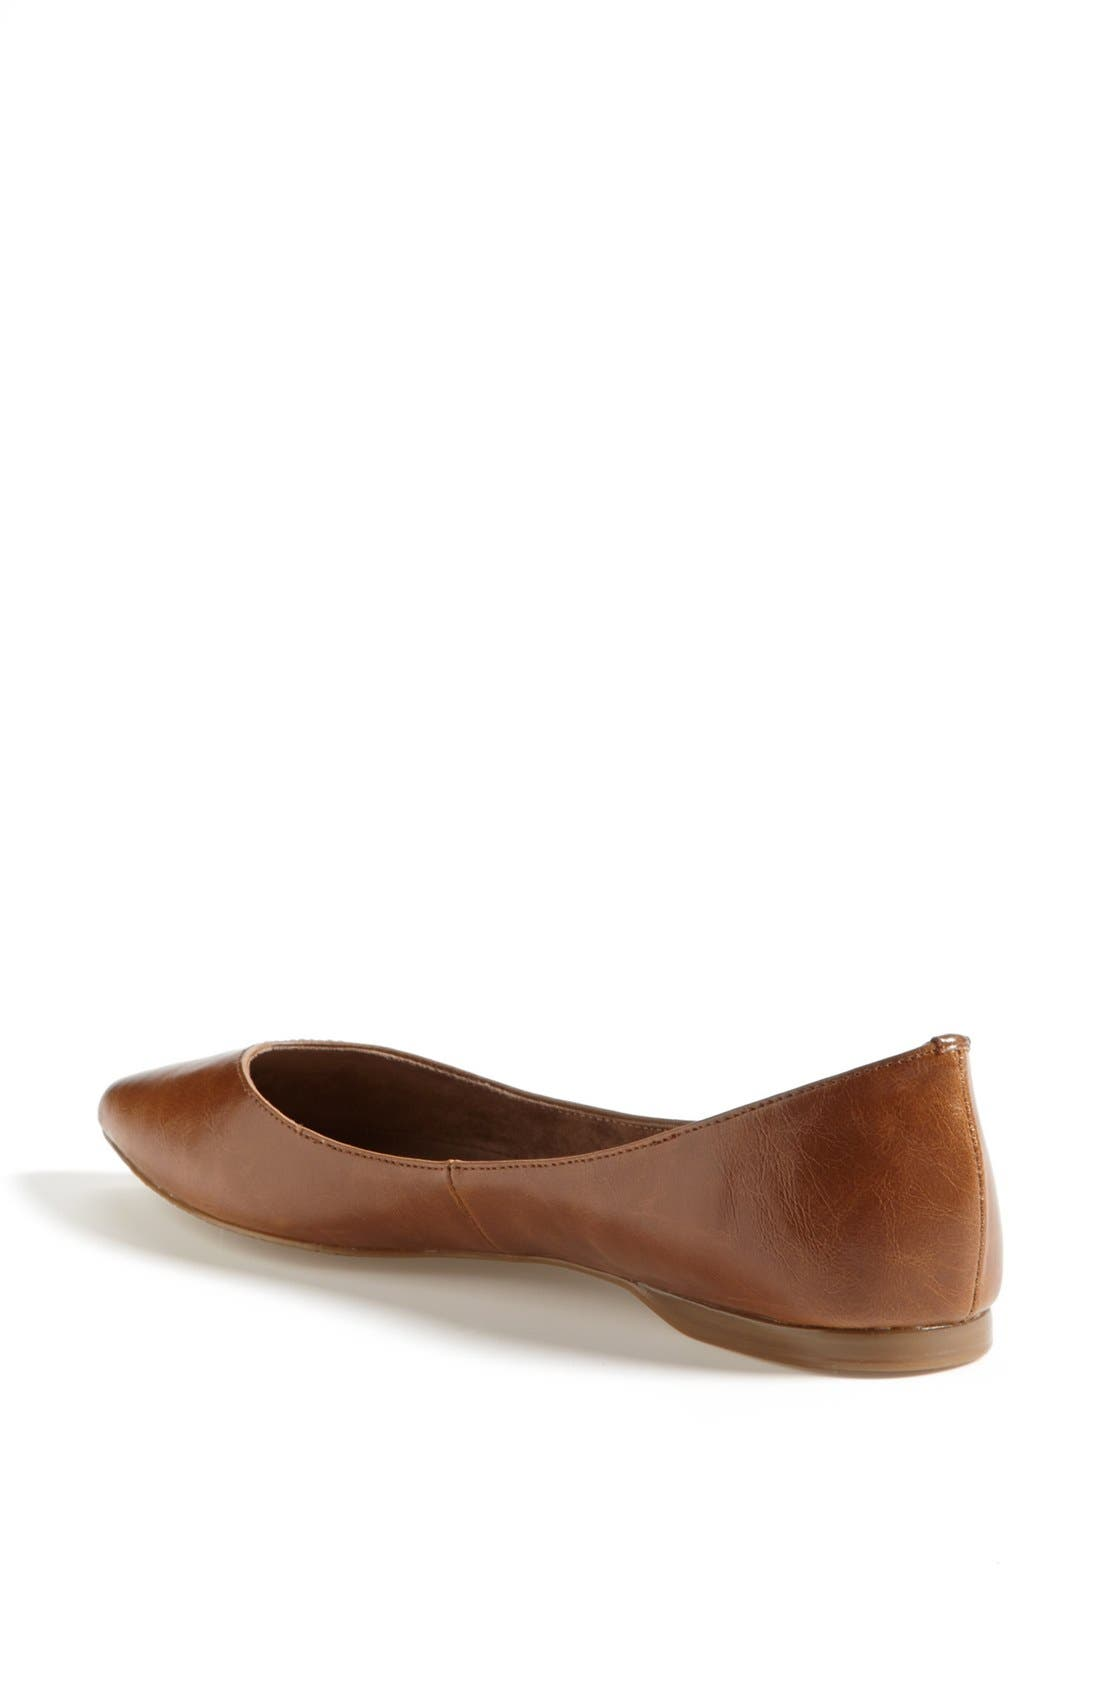 'Moveover' Pointy Toe Flat,                             Alternate thumbnail 32, color,